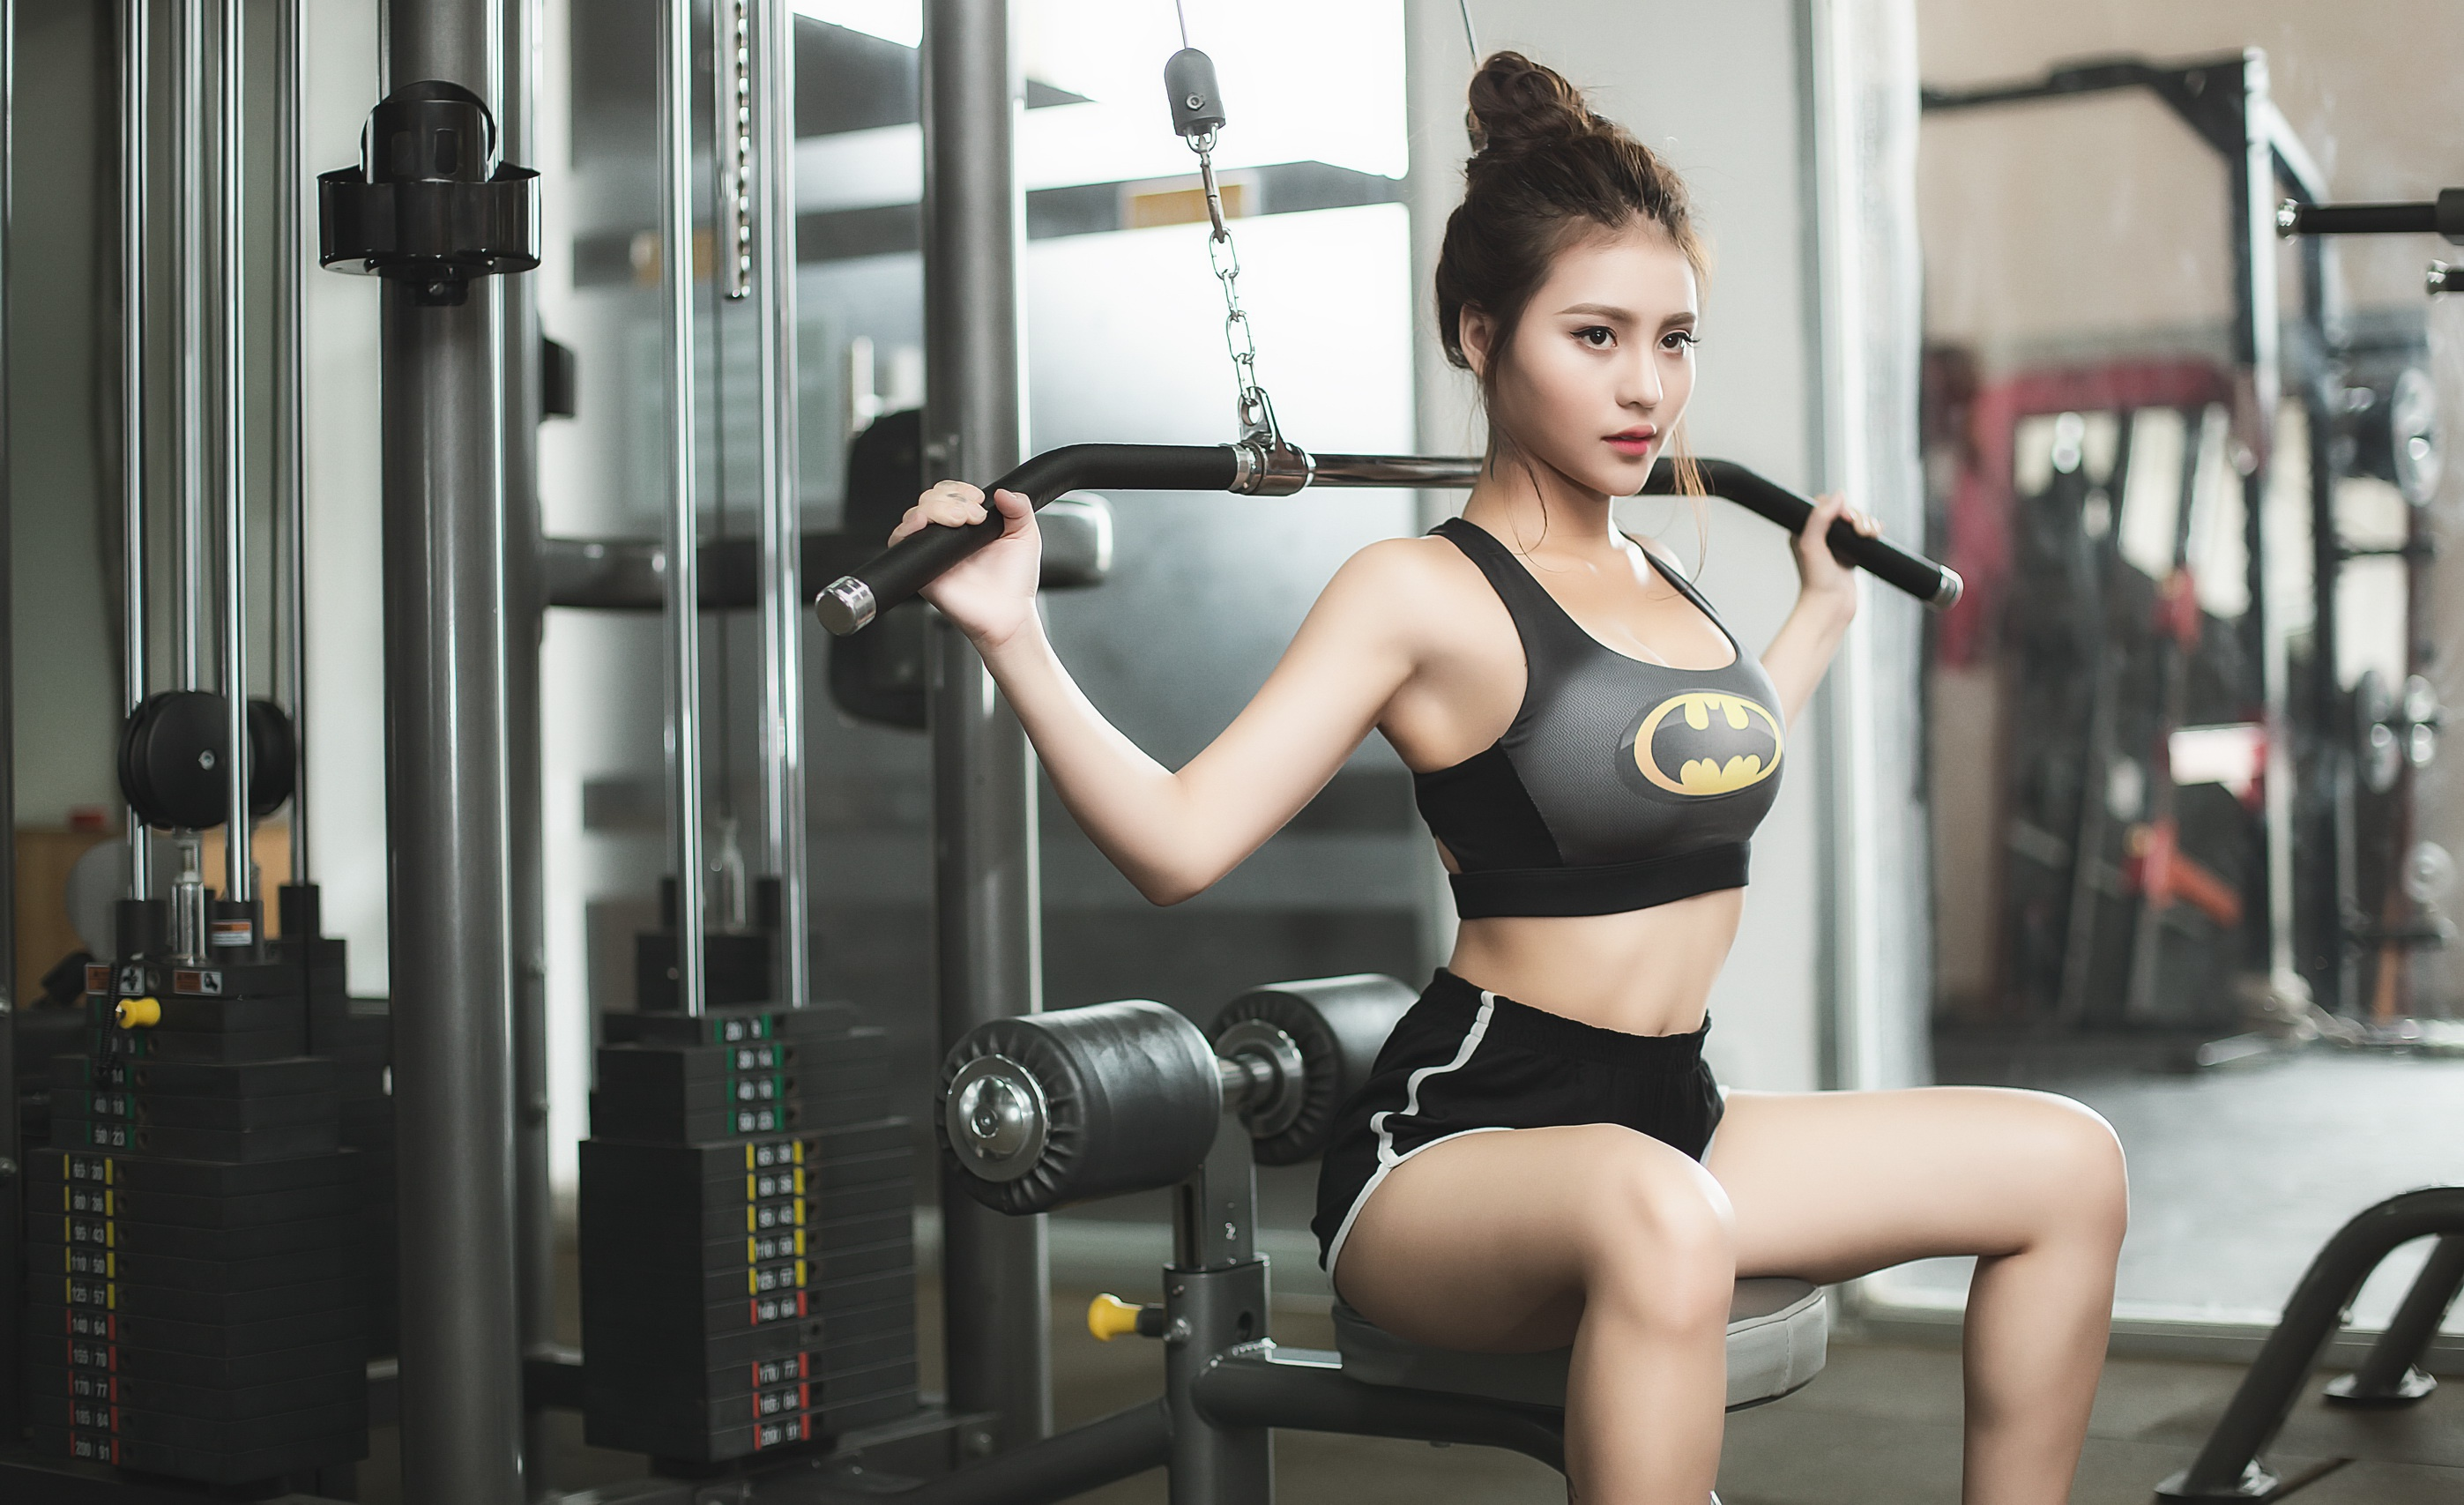 Health And Fitness Wallpaper - Fitness Asian Girl , HD Wallpaper & Backgrounds